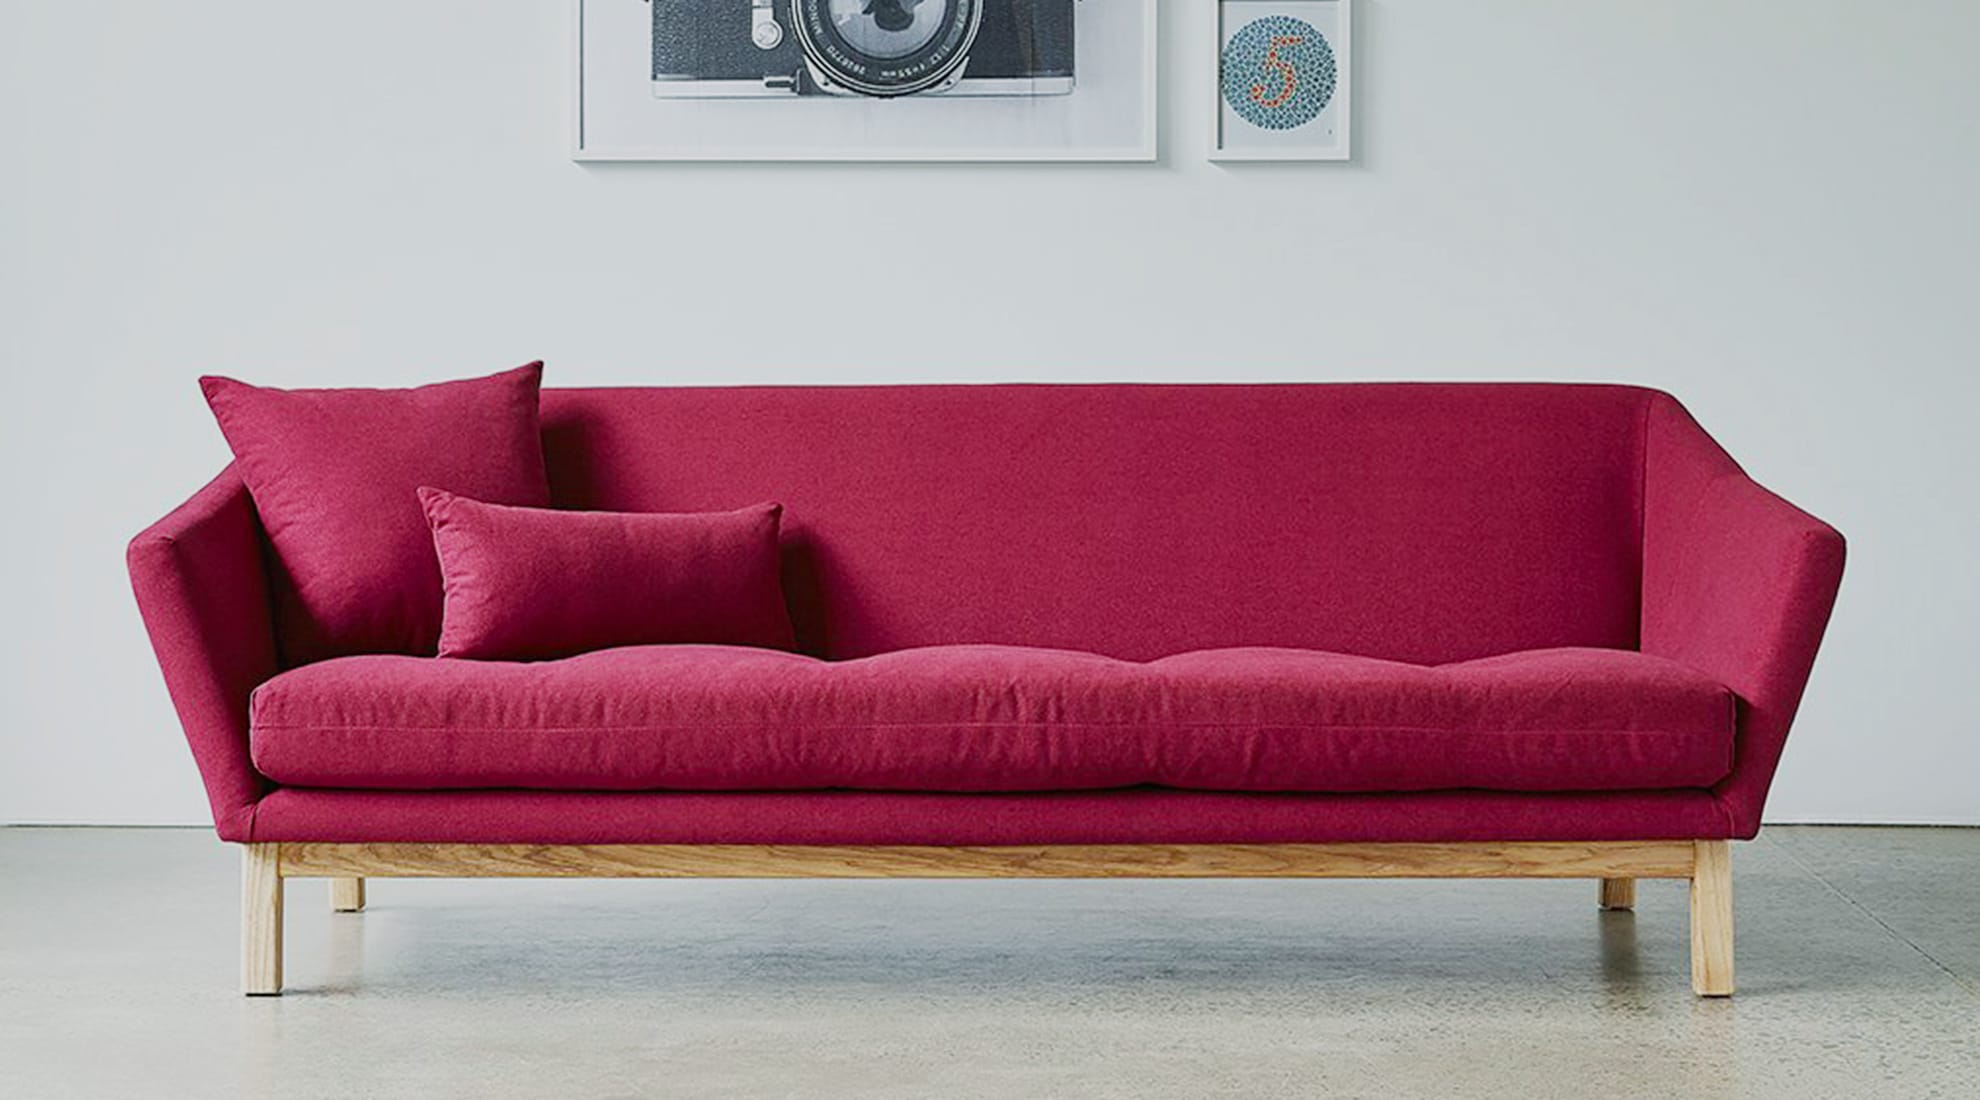 Upholstery Buyer's Guide